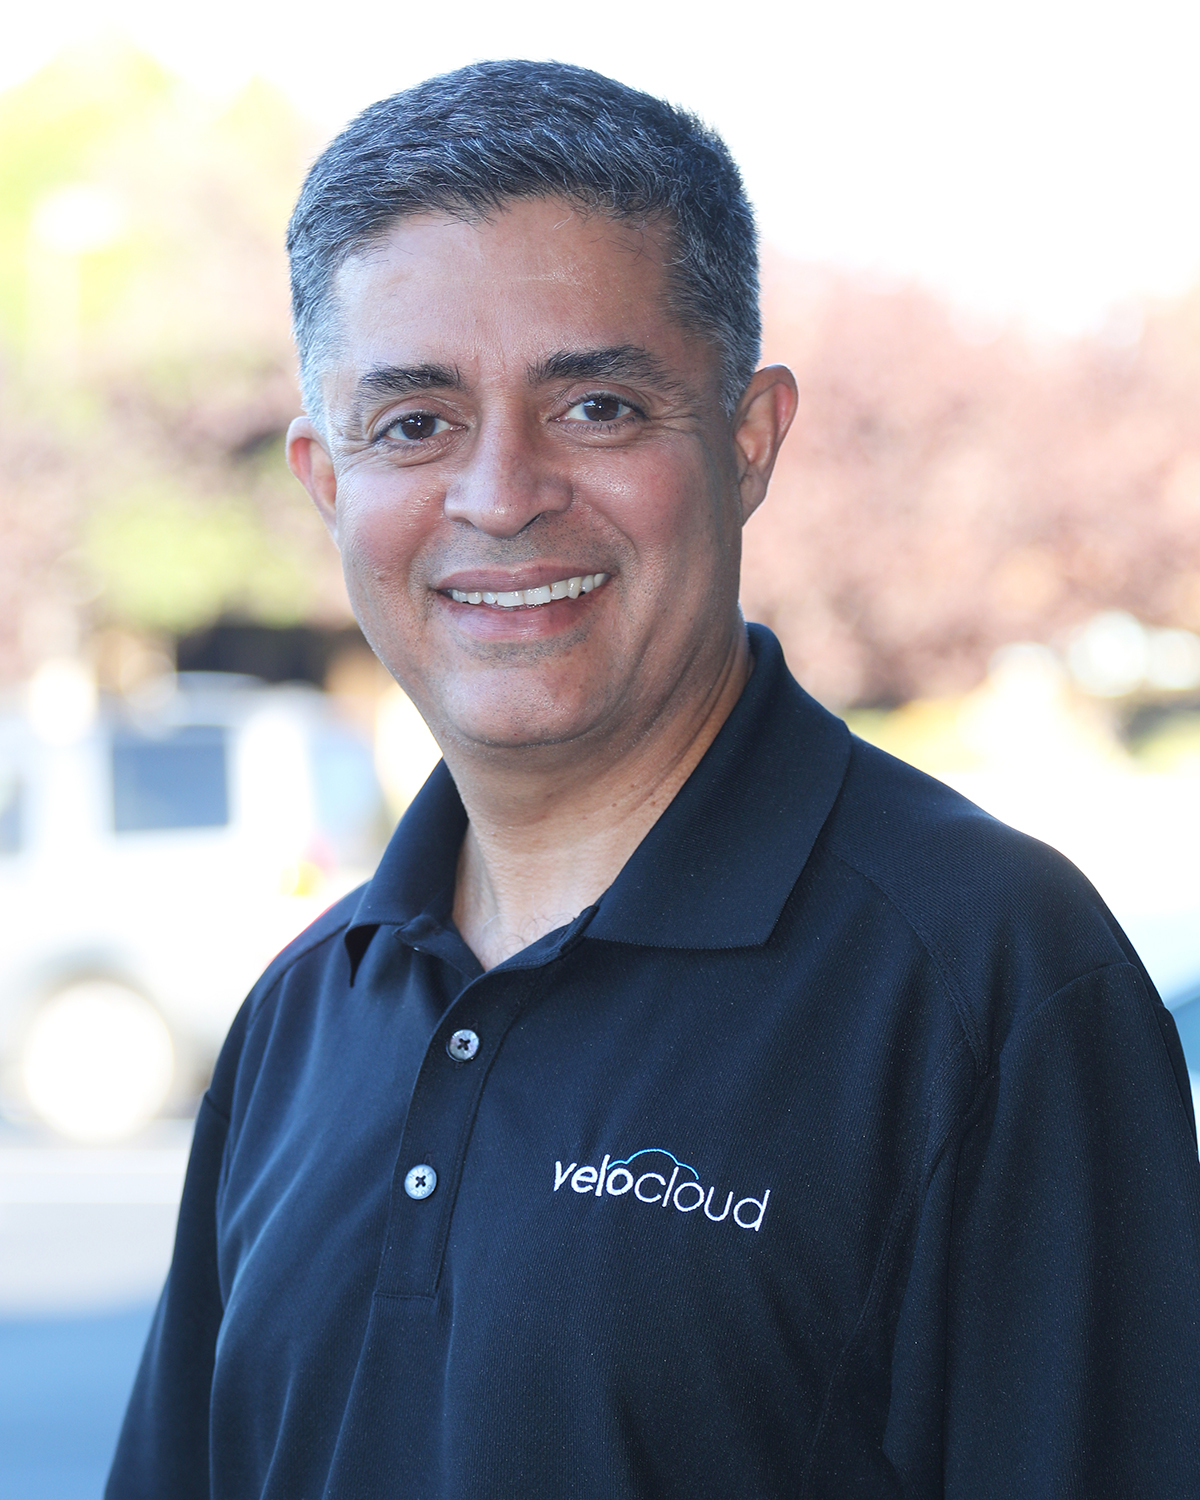 VeloCloud Named 2017 SD-WAN Global Market Share Leader by